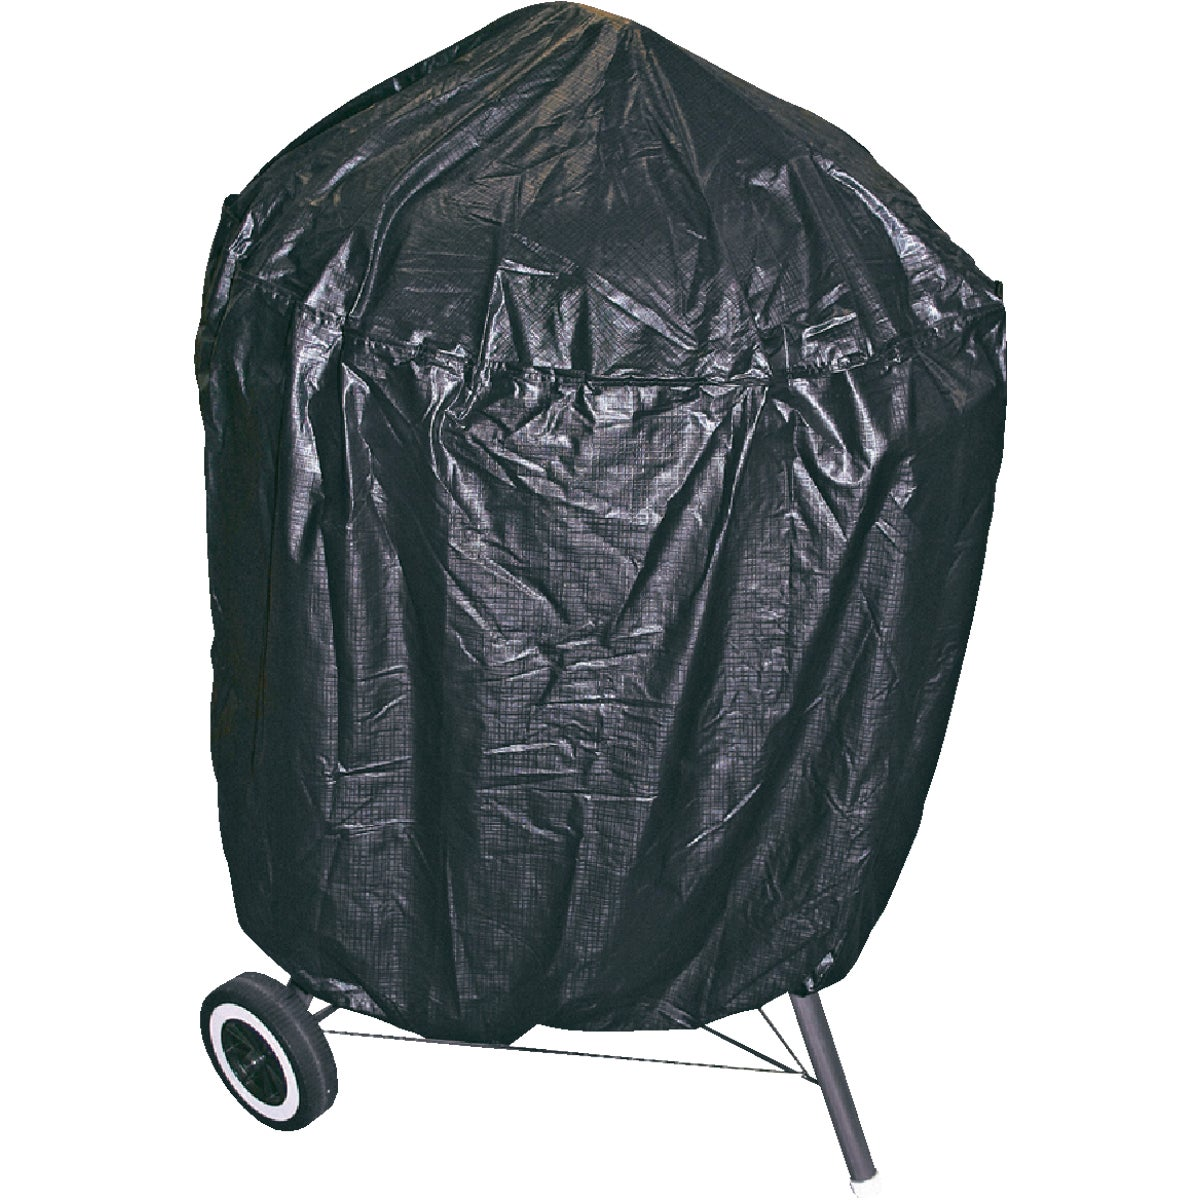 BBQ KETTLE COVER - 84027 by Onward Multi Corp  D